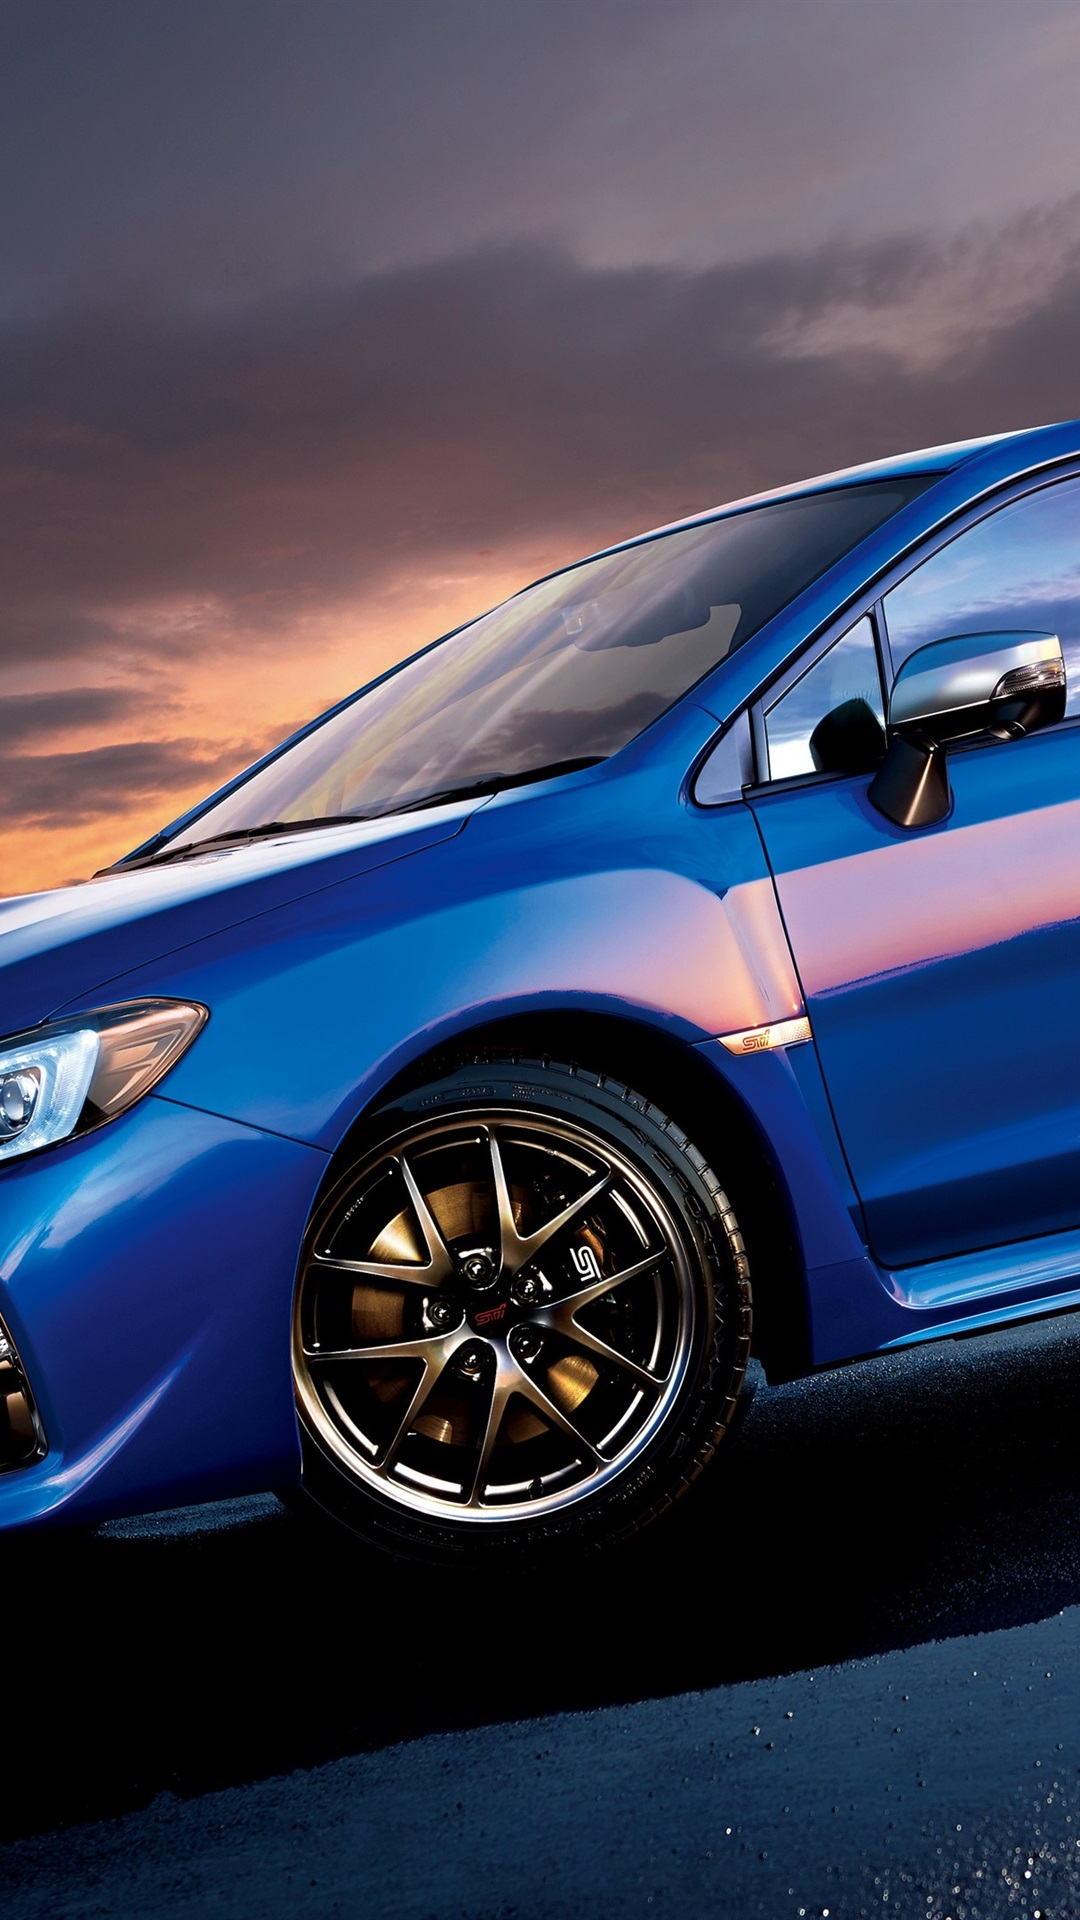 Subaru Sti Wrx Blue Car Side View 1080x1920 Iphone 8 7 6 6s